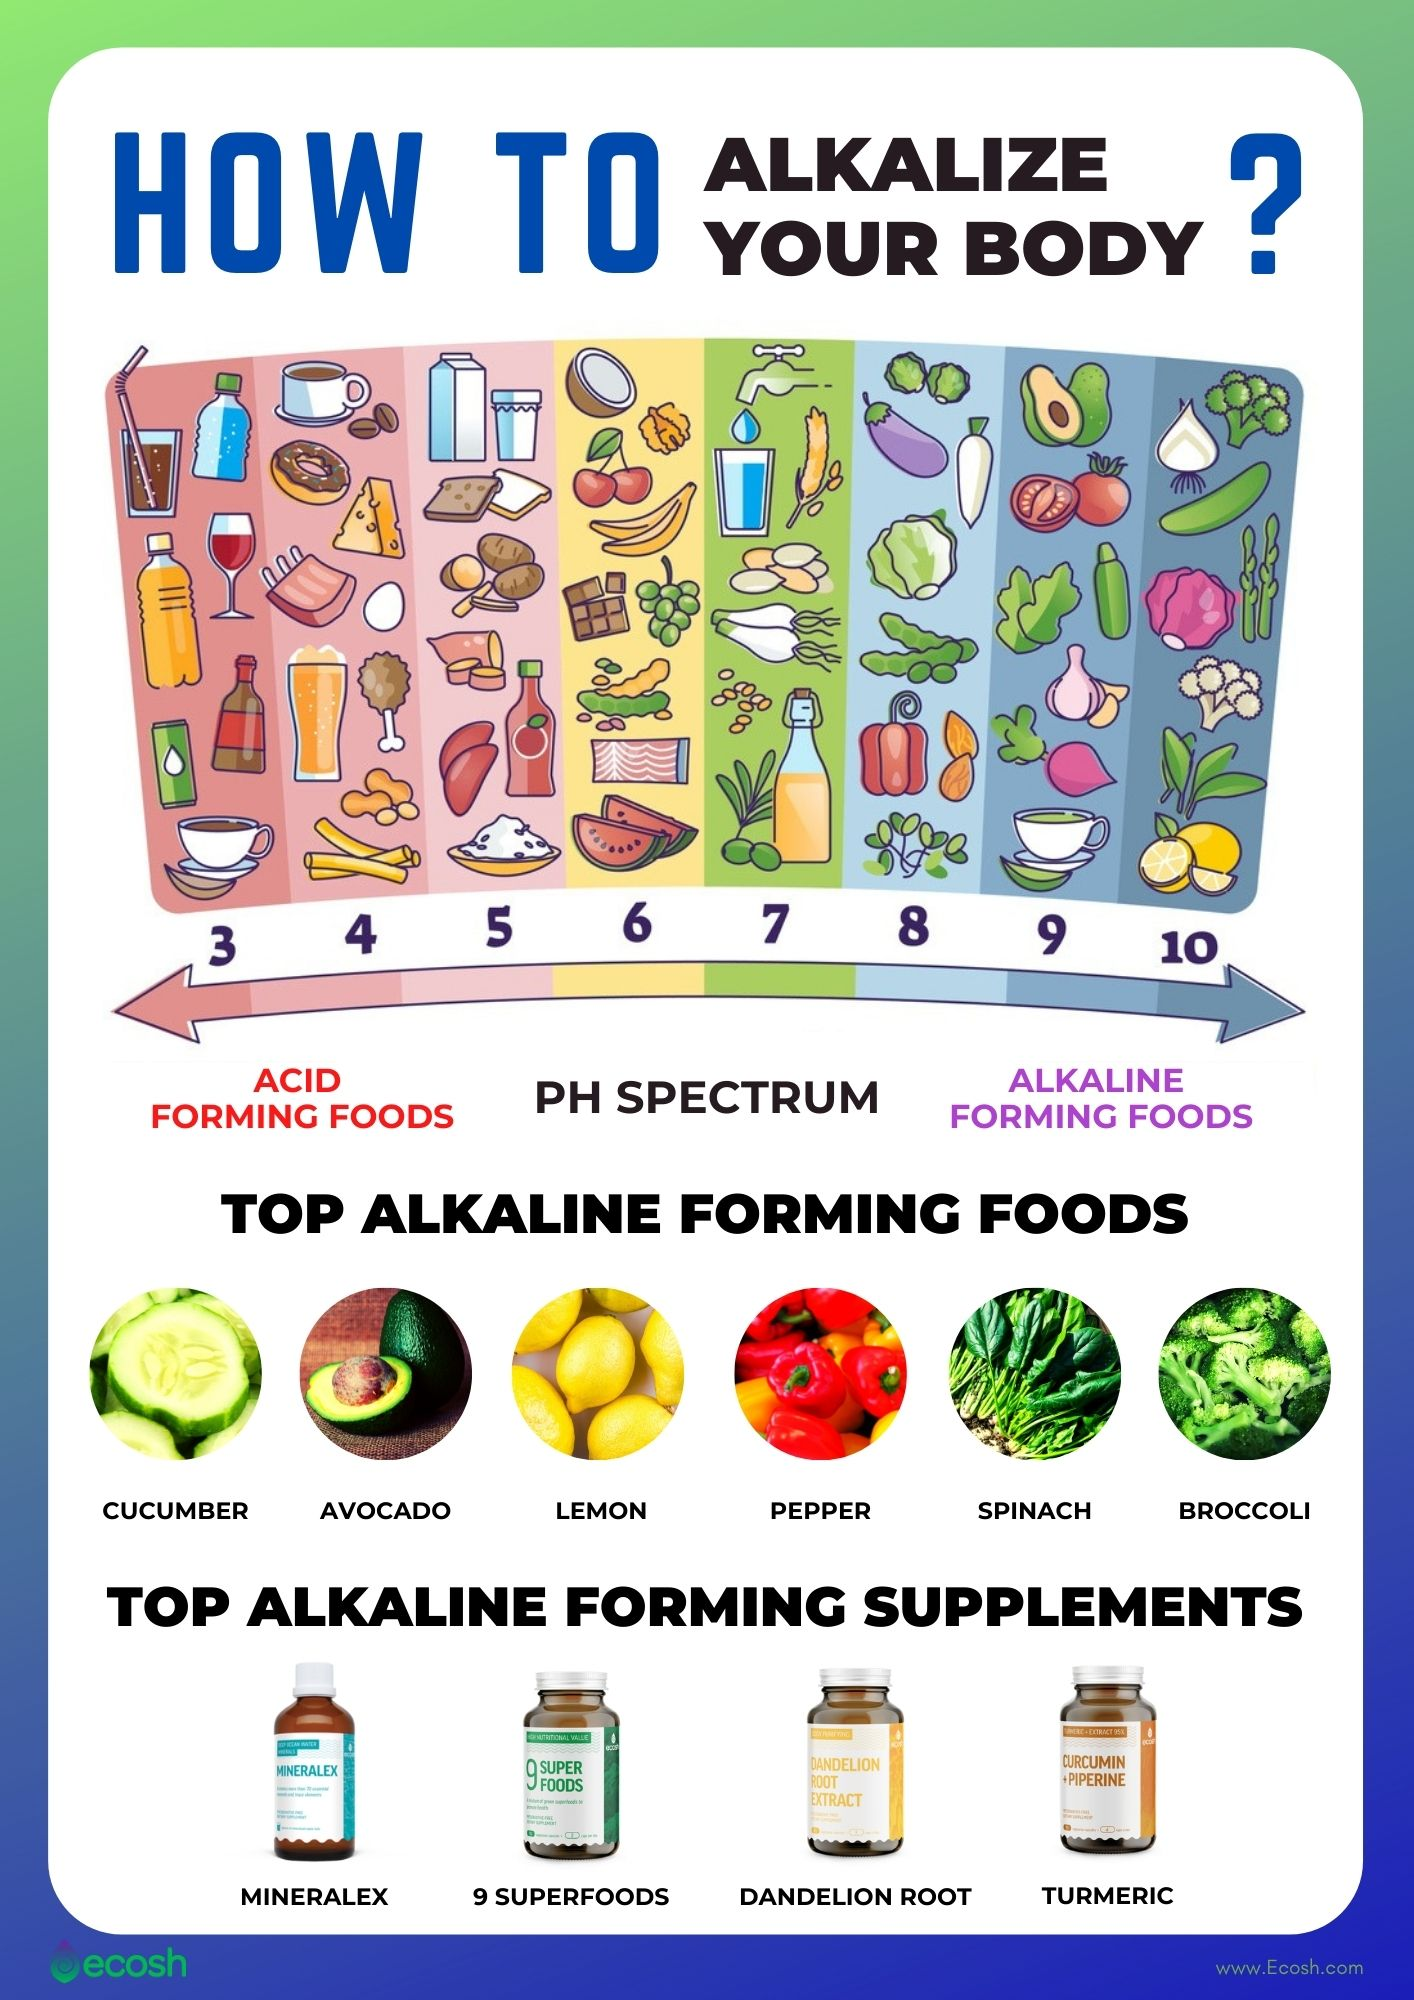 How_to_Alkalize_Your_Body_Acid_Base_Balance_in_Your_Body_Alkaline_Foods_Alkaline_Forming_Foods_Alkaline_Forming_Herbs_Home_Remedies_For_Alkaline_Body_Home_Remedies_For_Alkalizing